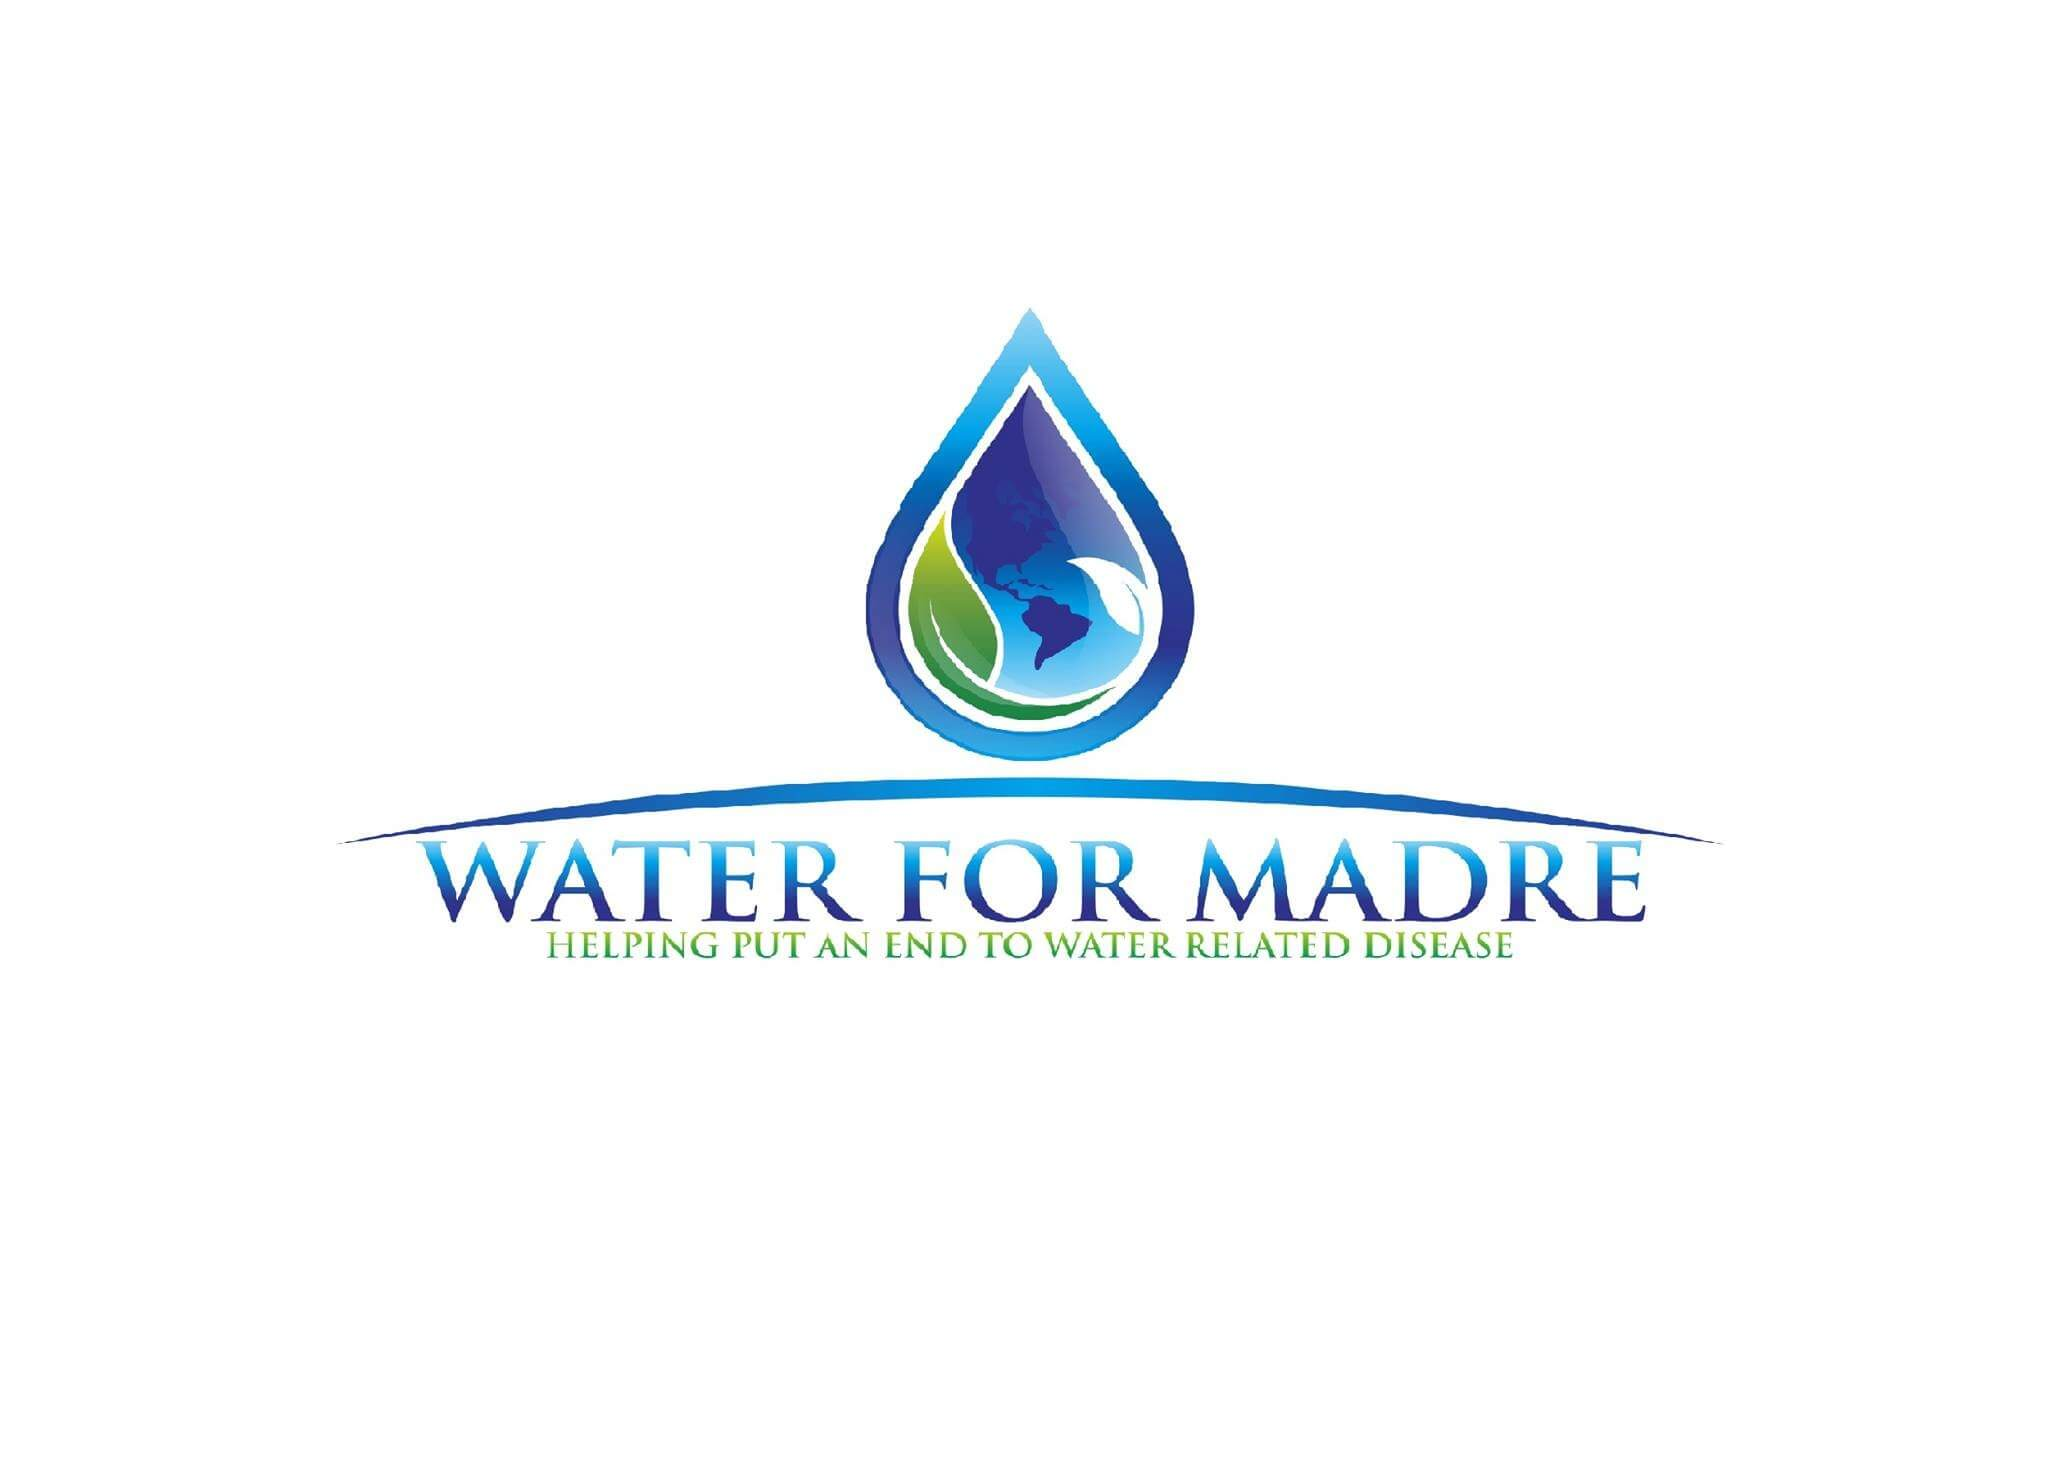 water-for-madre